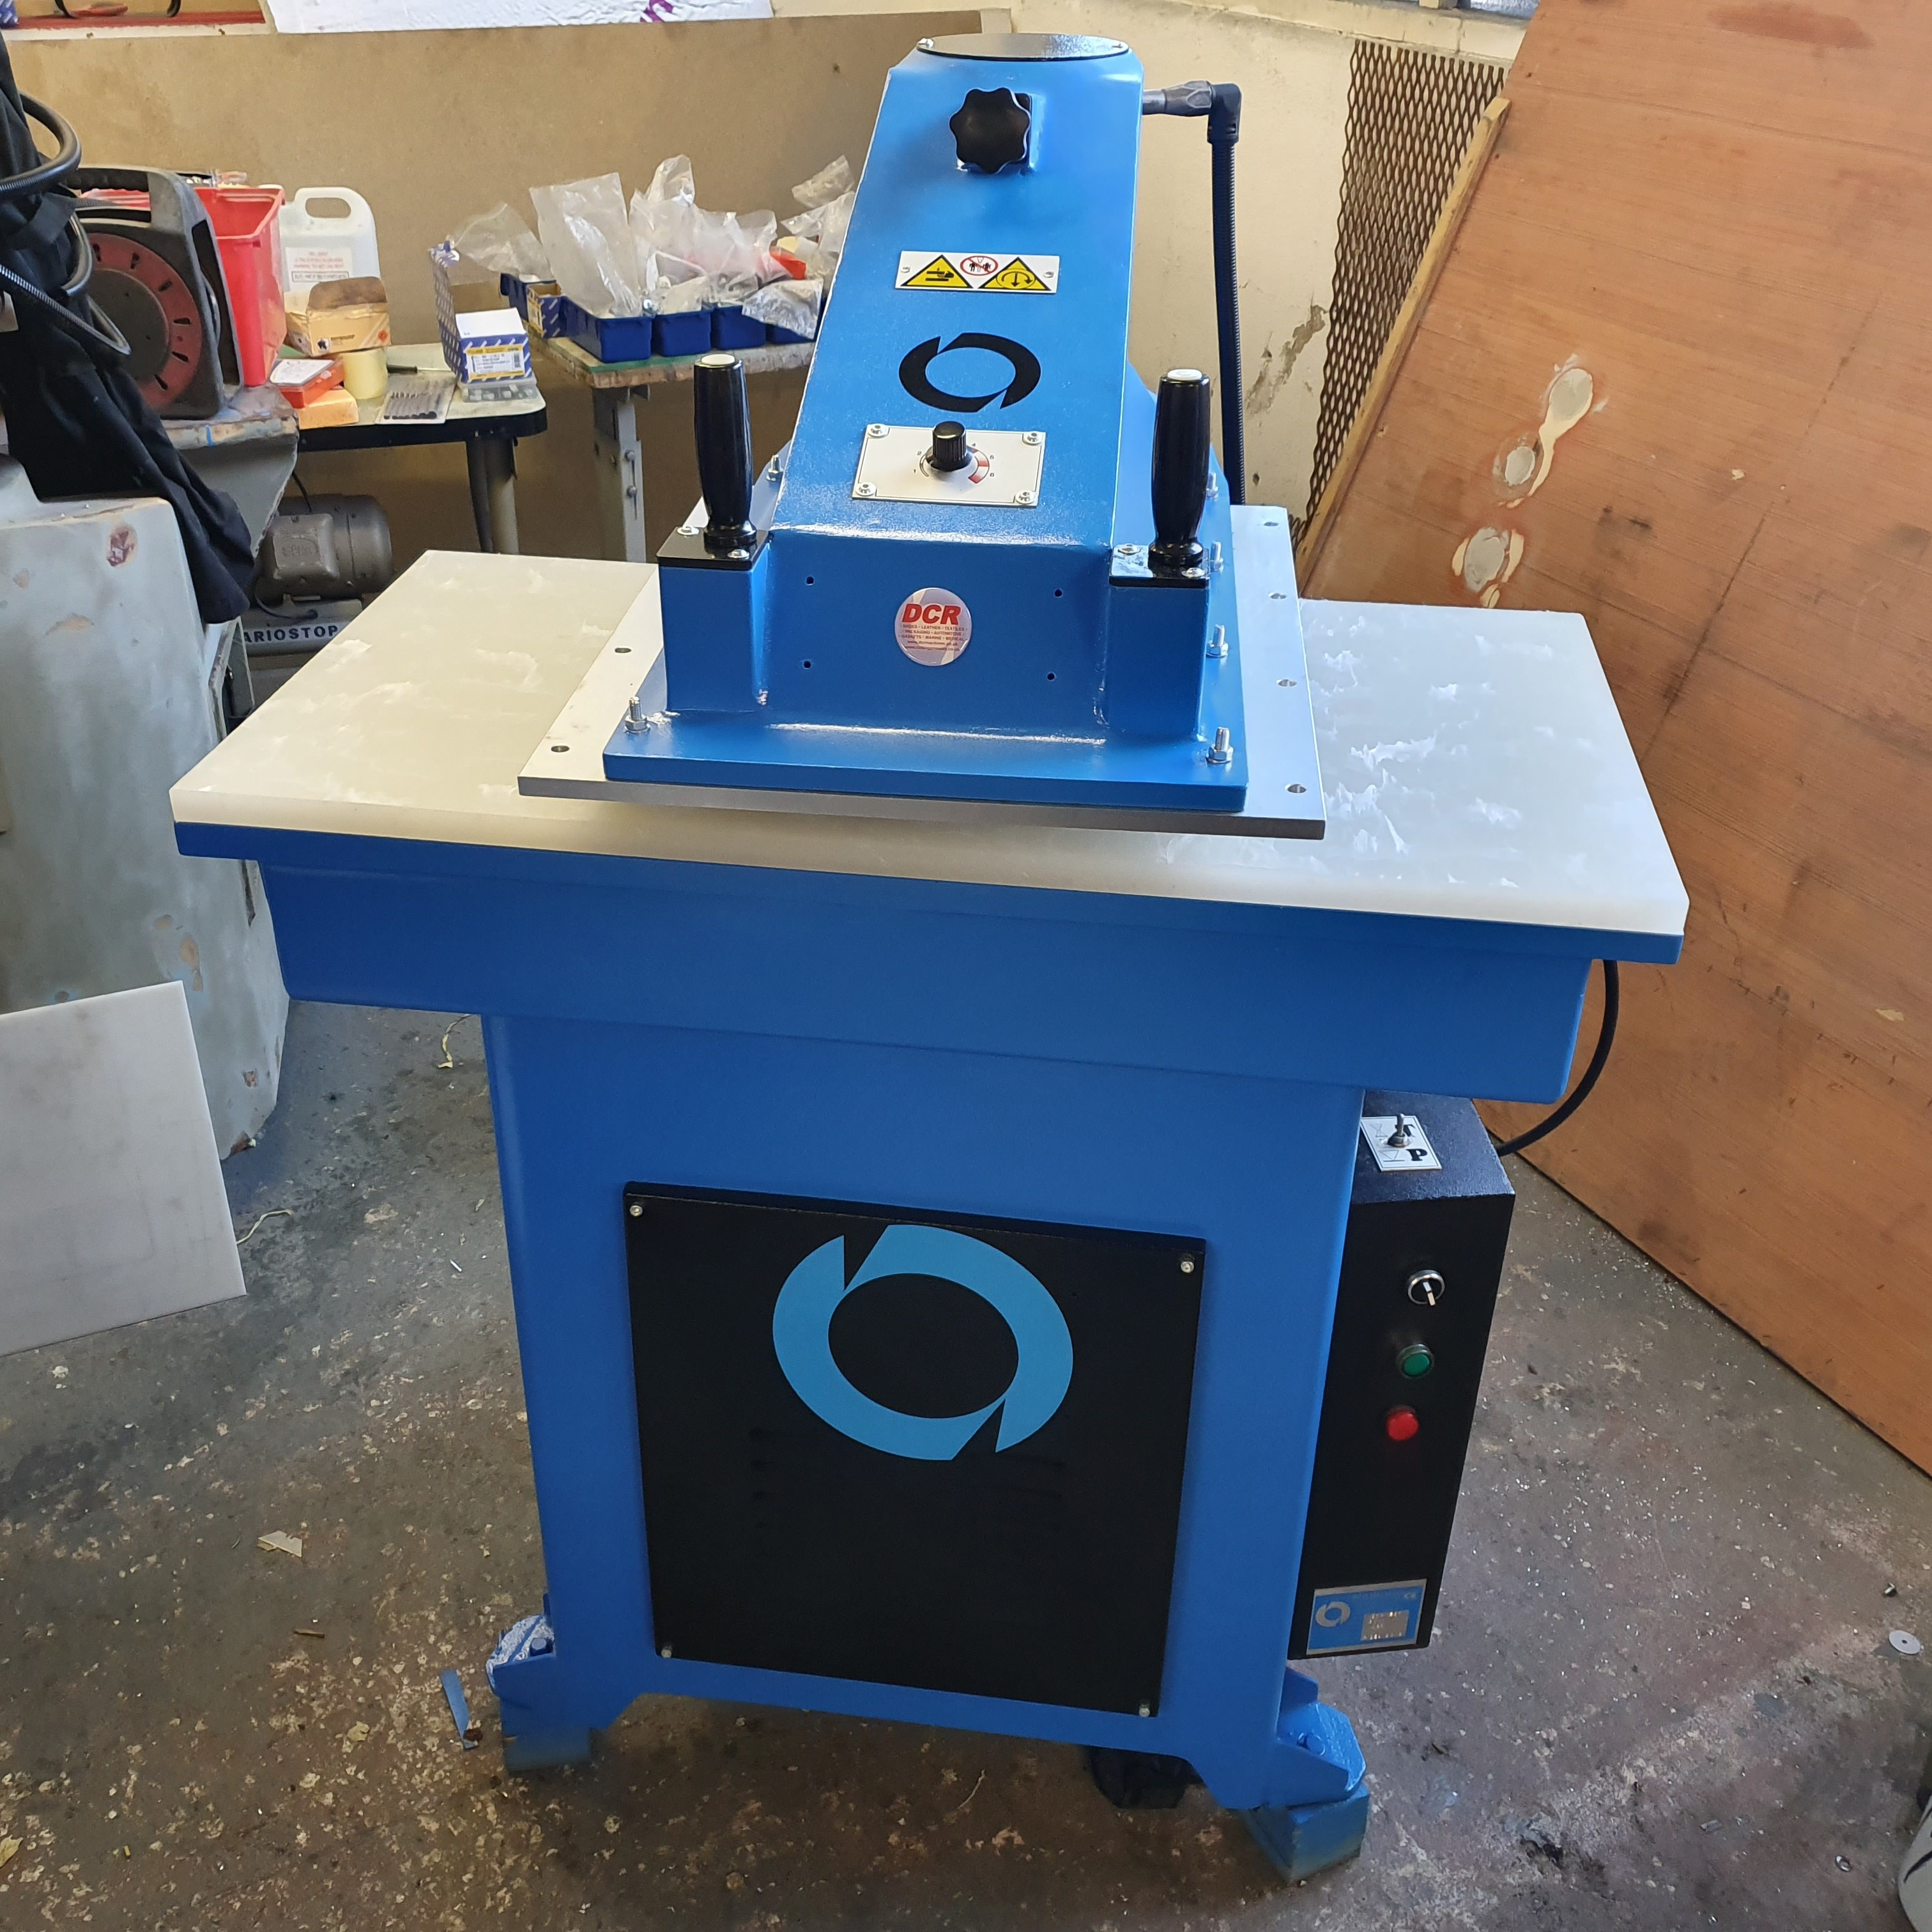 Photo of an DCR-F50 REFURBISHED CLICKER PRESS Industrial Sewing Machines